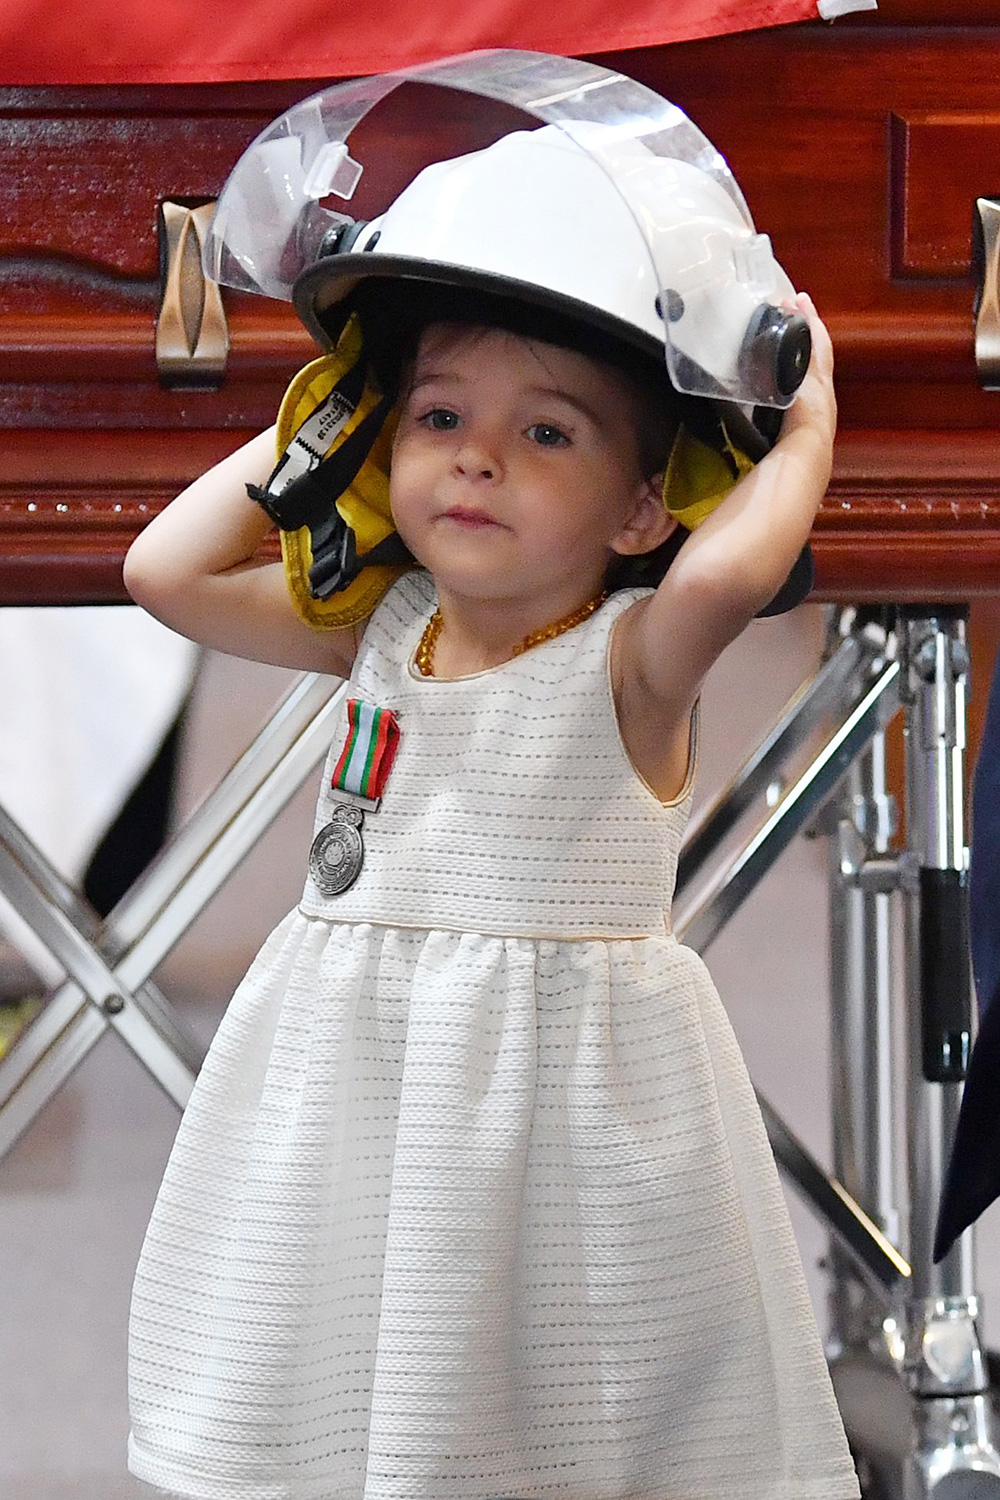 Charlotte O'Dwyer, daughter of late New South Wales (NSW) Rural Fire Service (RFS) volunteer Andrew O'Dwyer, wears her father's helmet during a funeral, at Our Lady of Victories Catholic Church in Horsley Park, Sydney, Australia, 07 January 2020